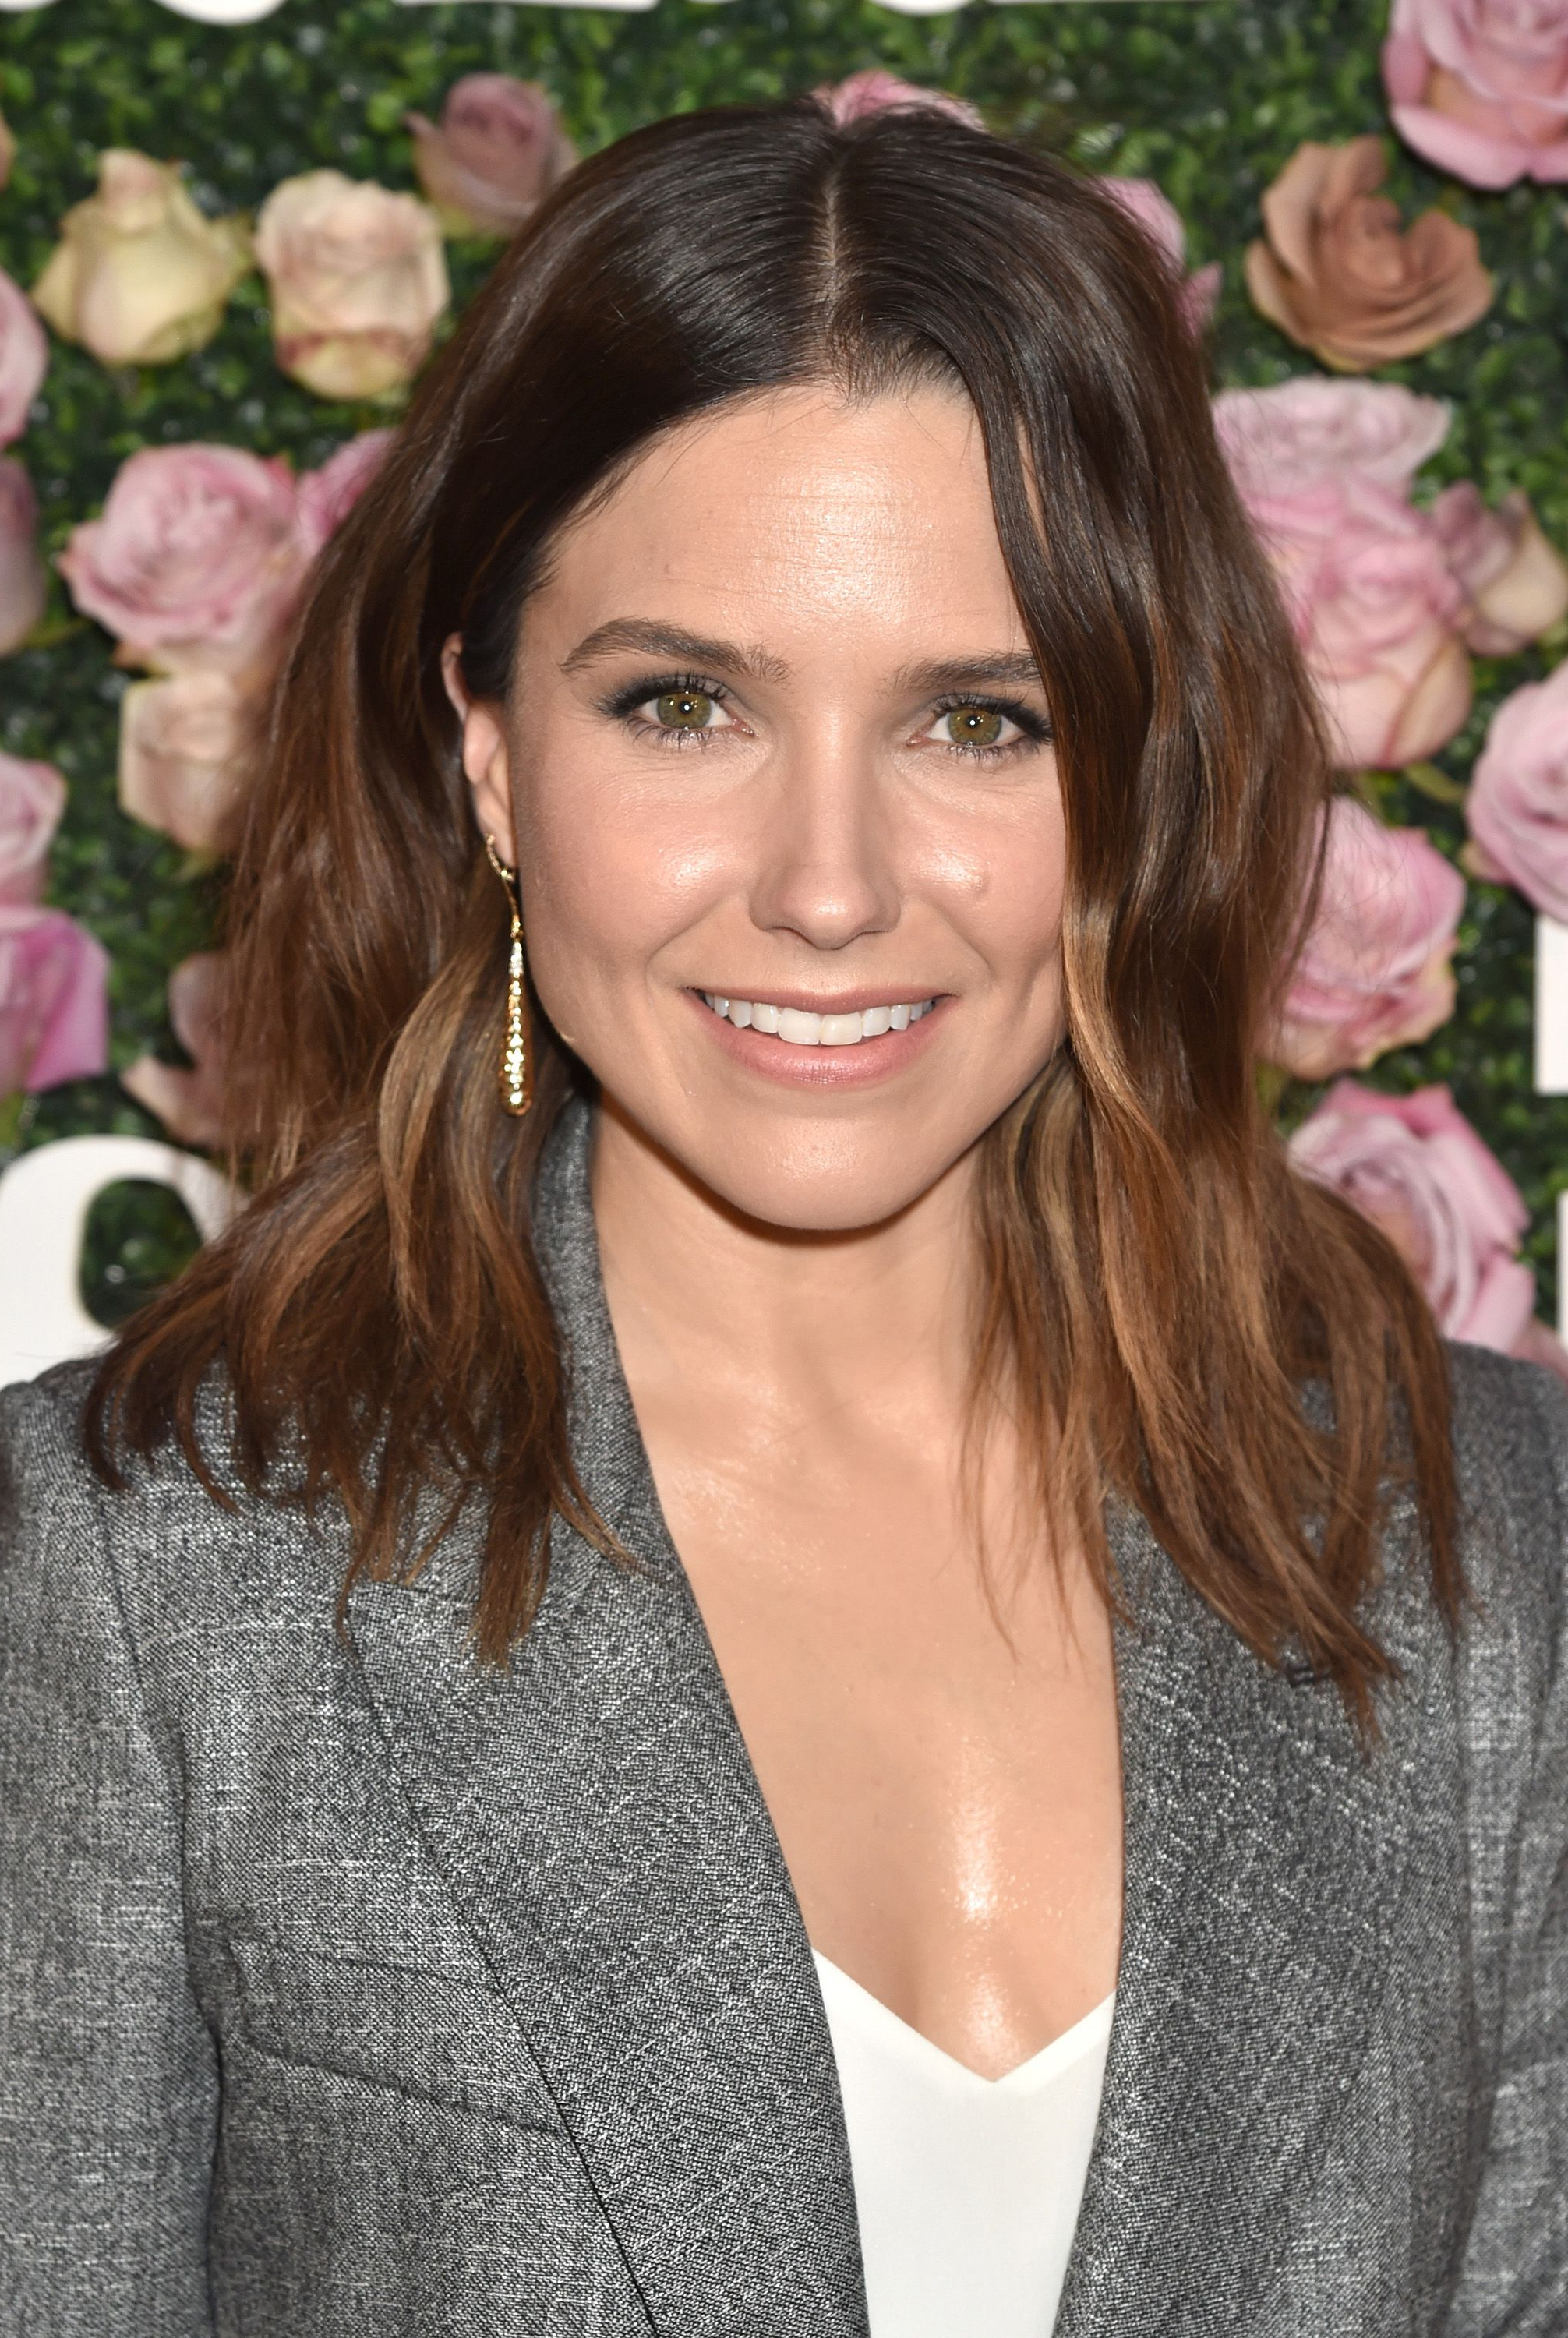 35 Best Haircuts For Women Over 30 – Short & Long Hairstyle Ideas For Well Known Sophia Bush Medium Hairstyles (View 2 of 20)